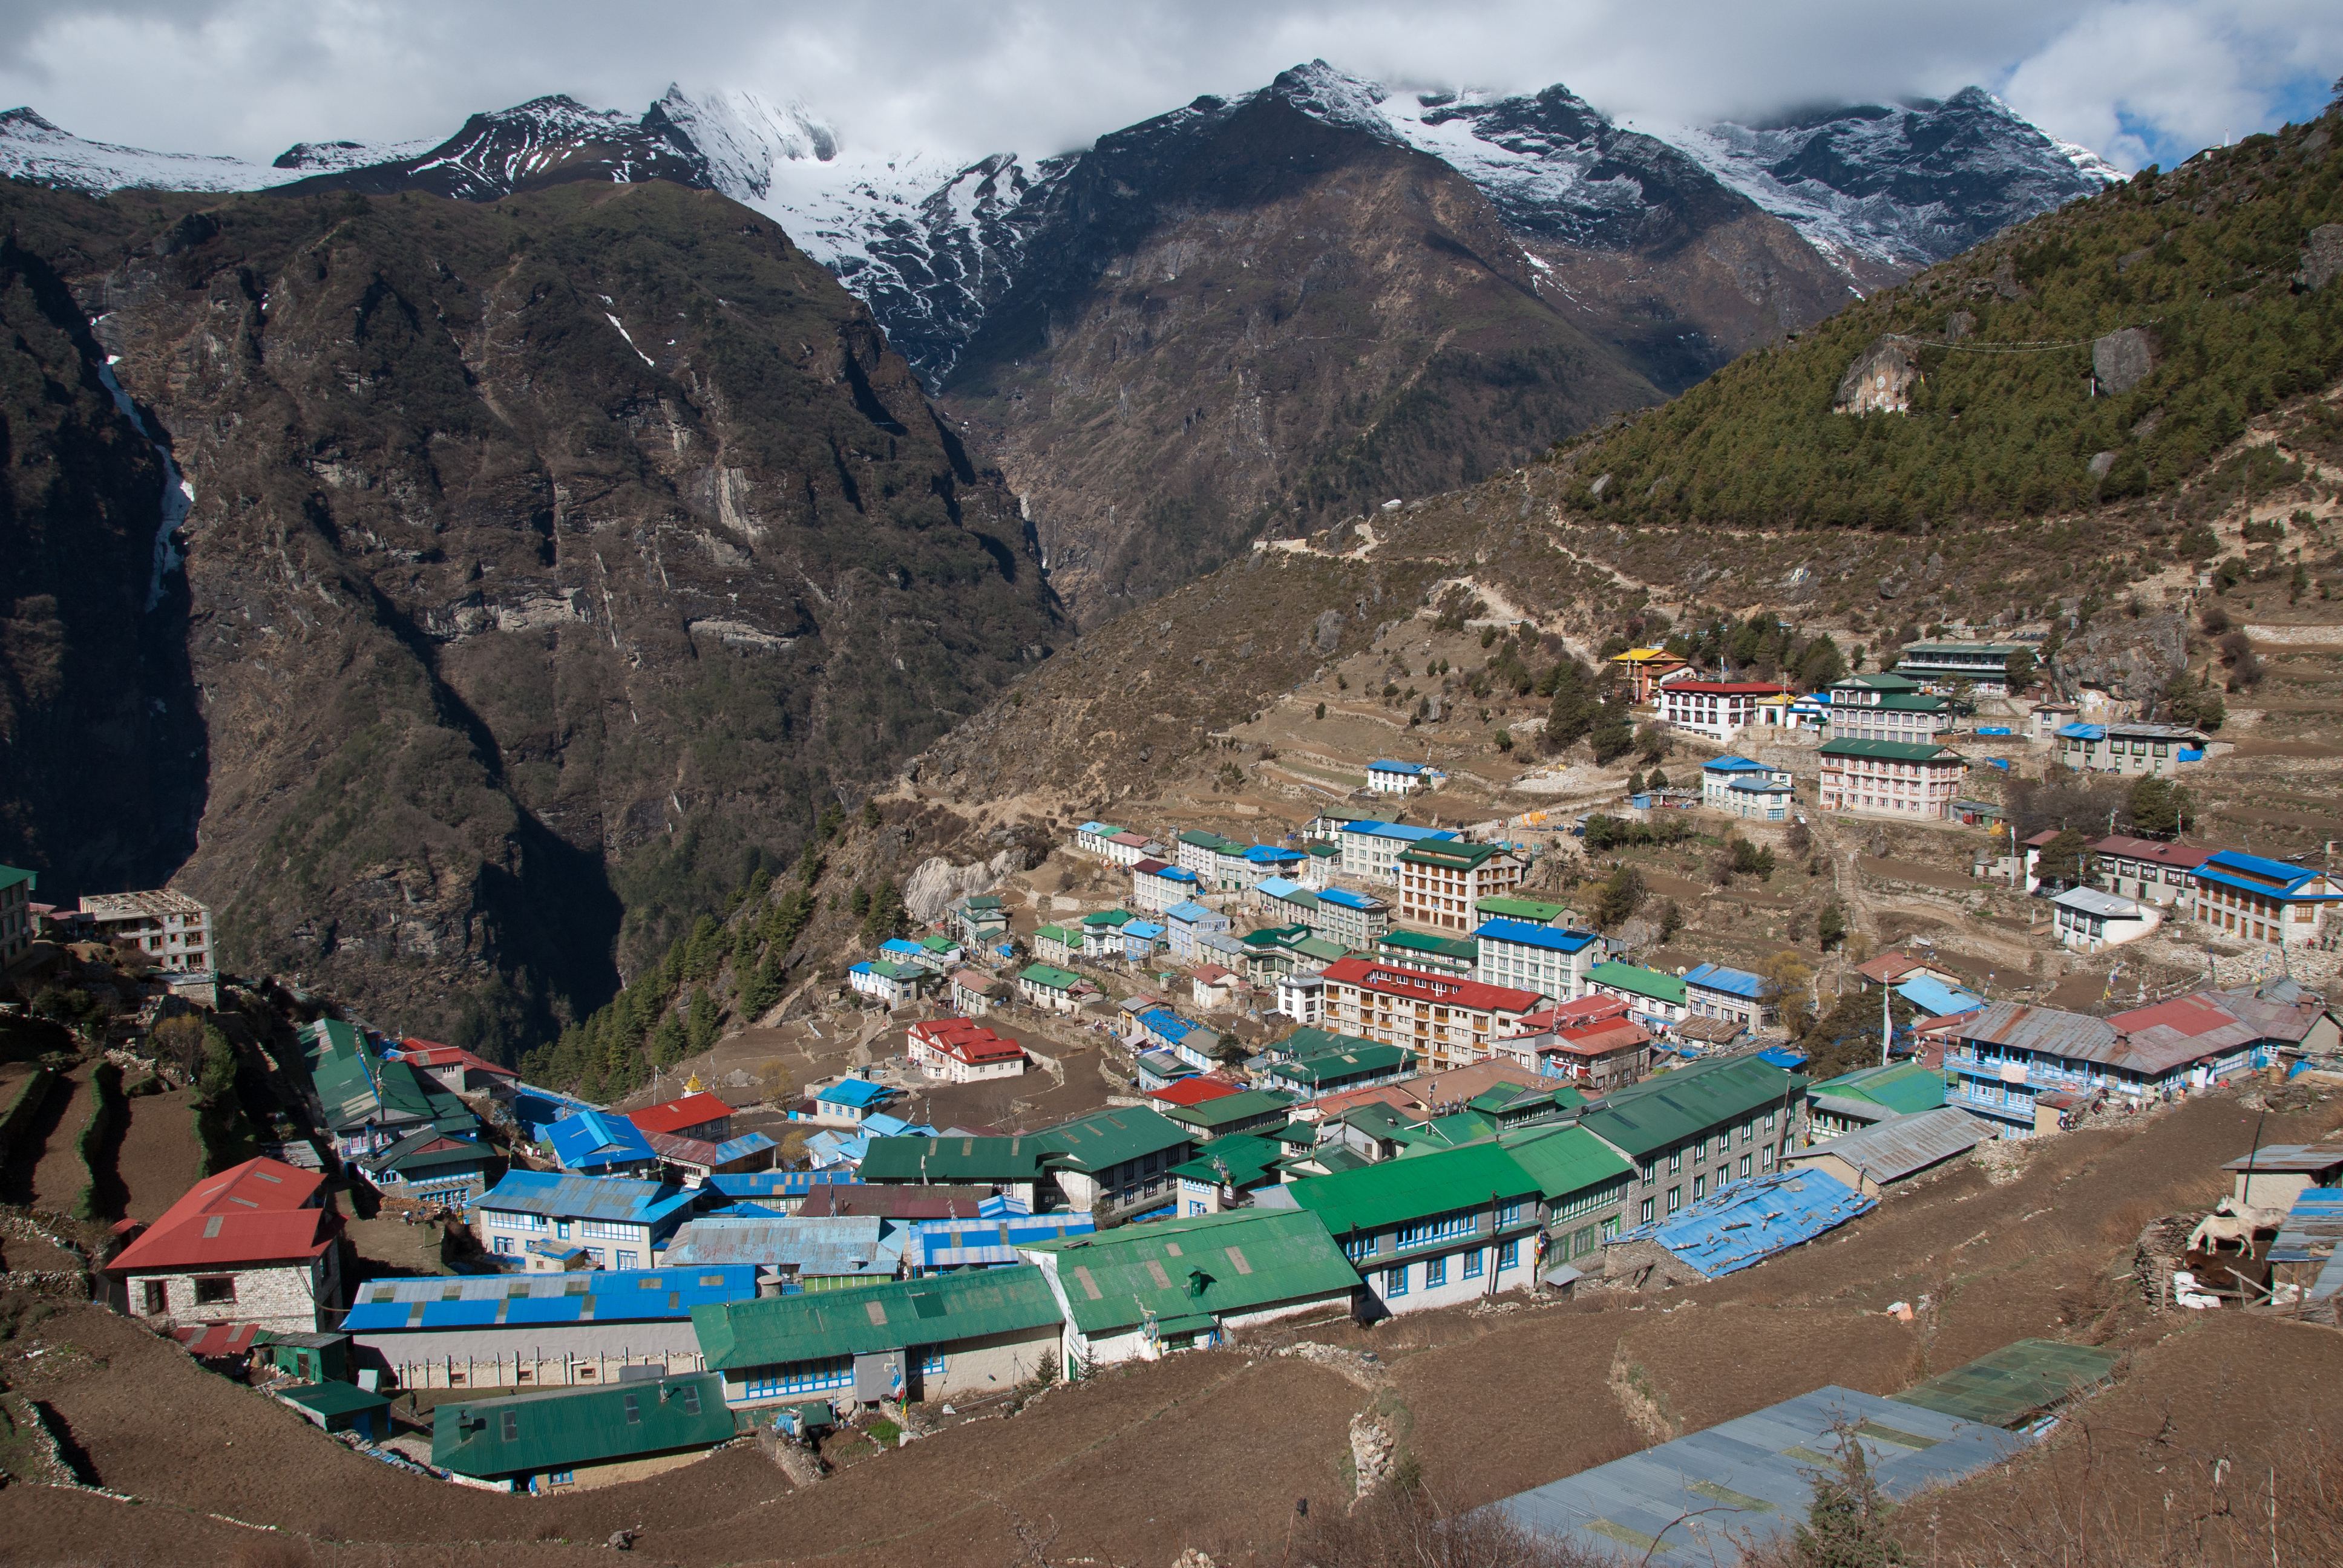 A small village in Everest region